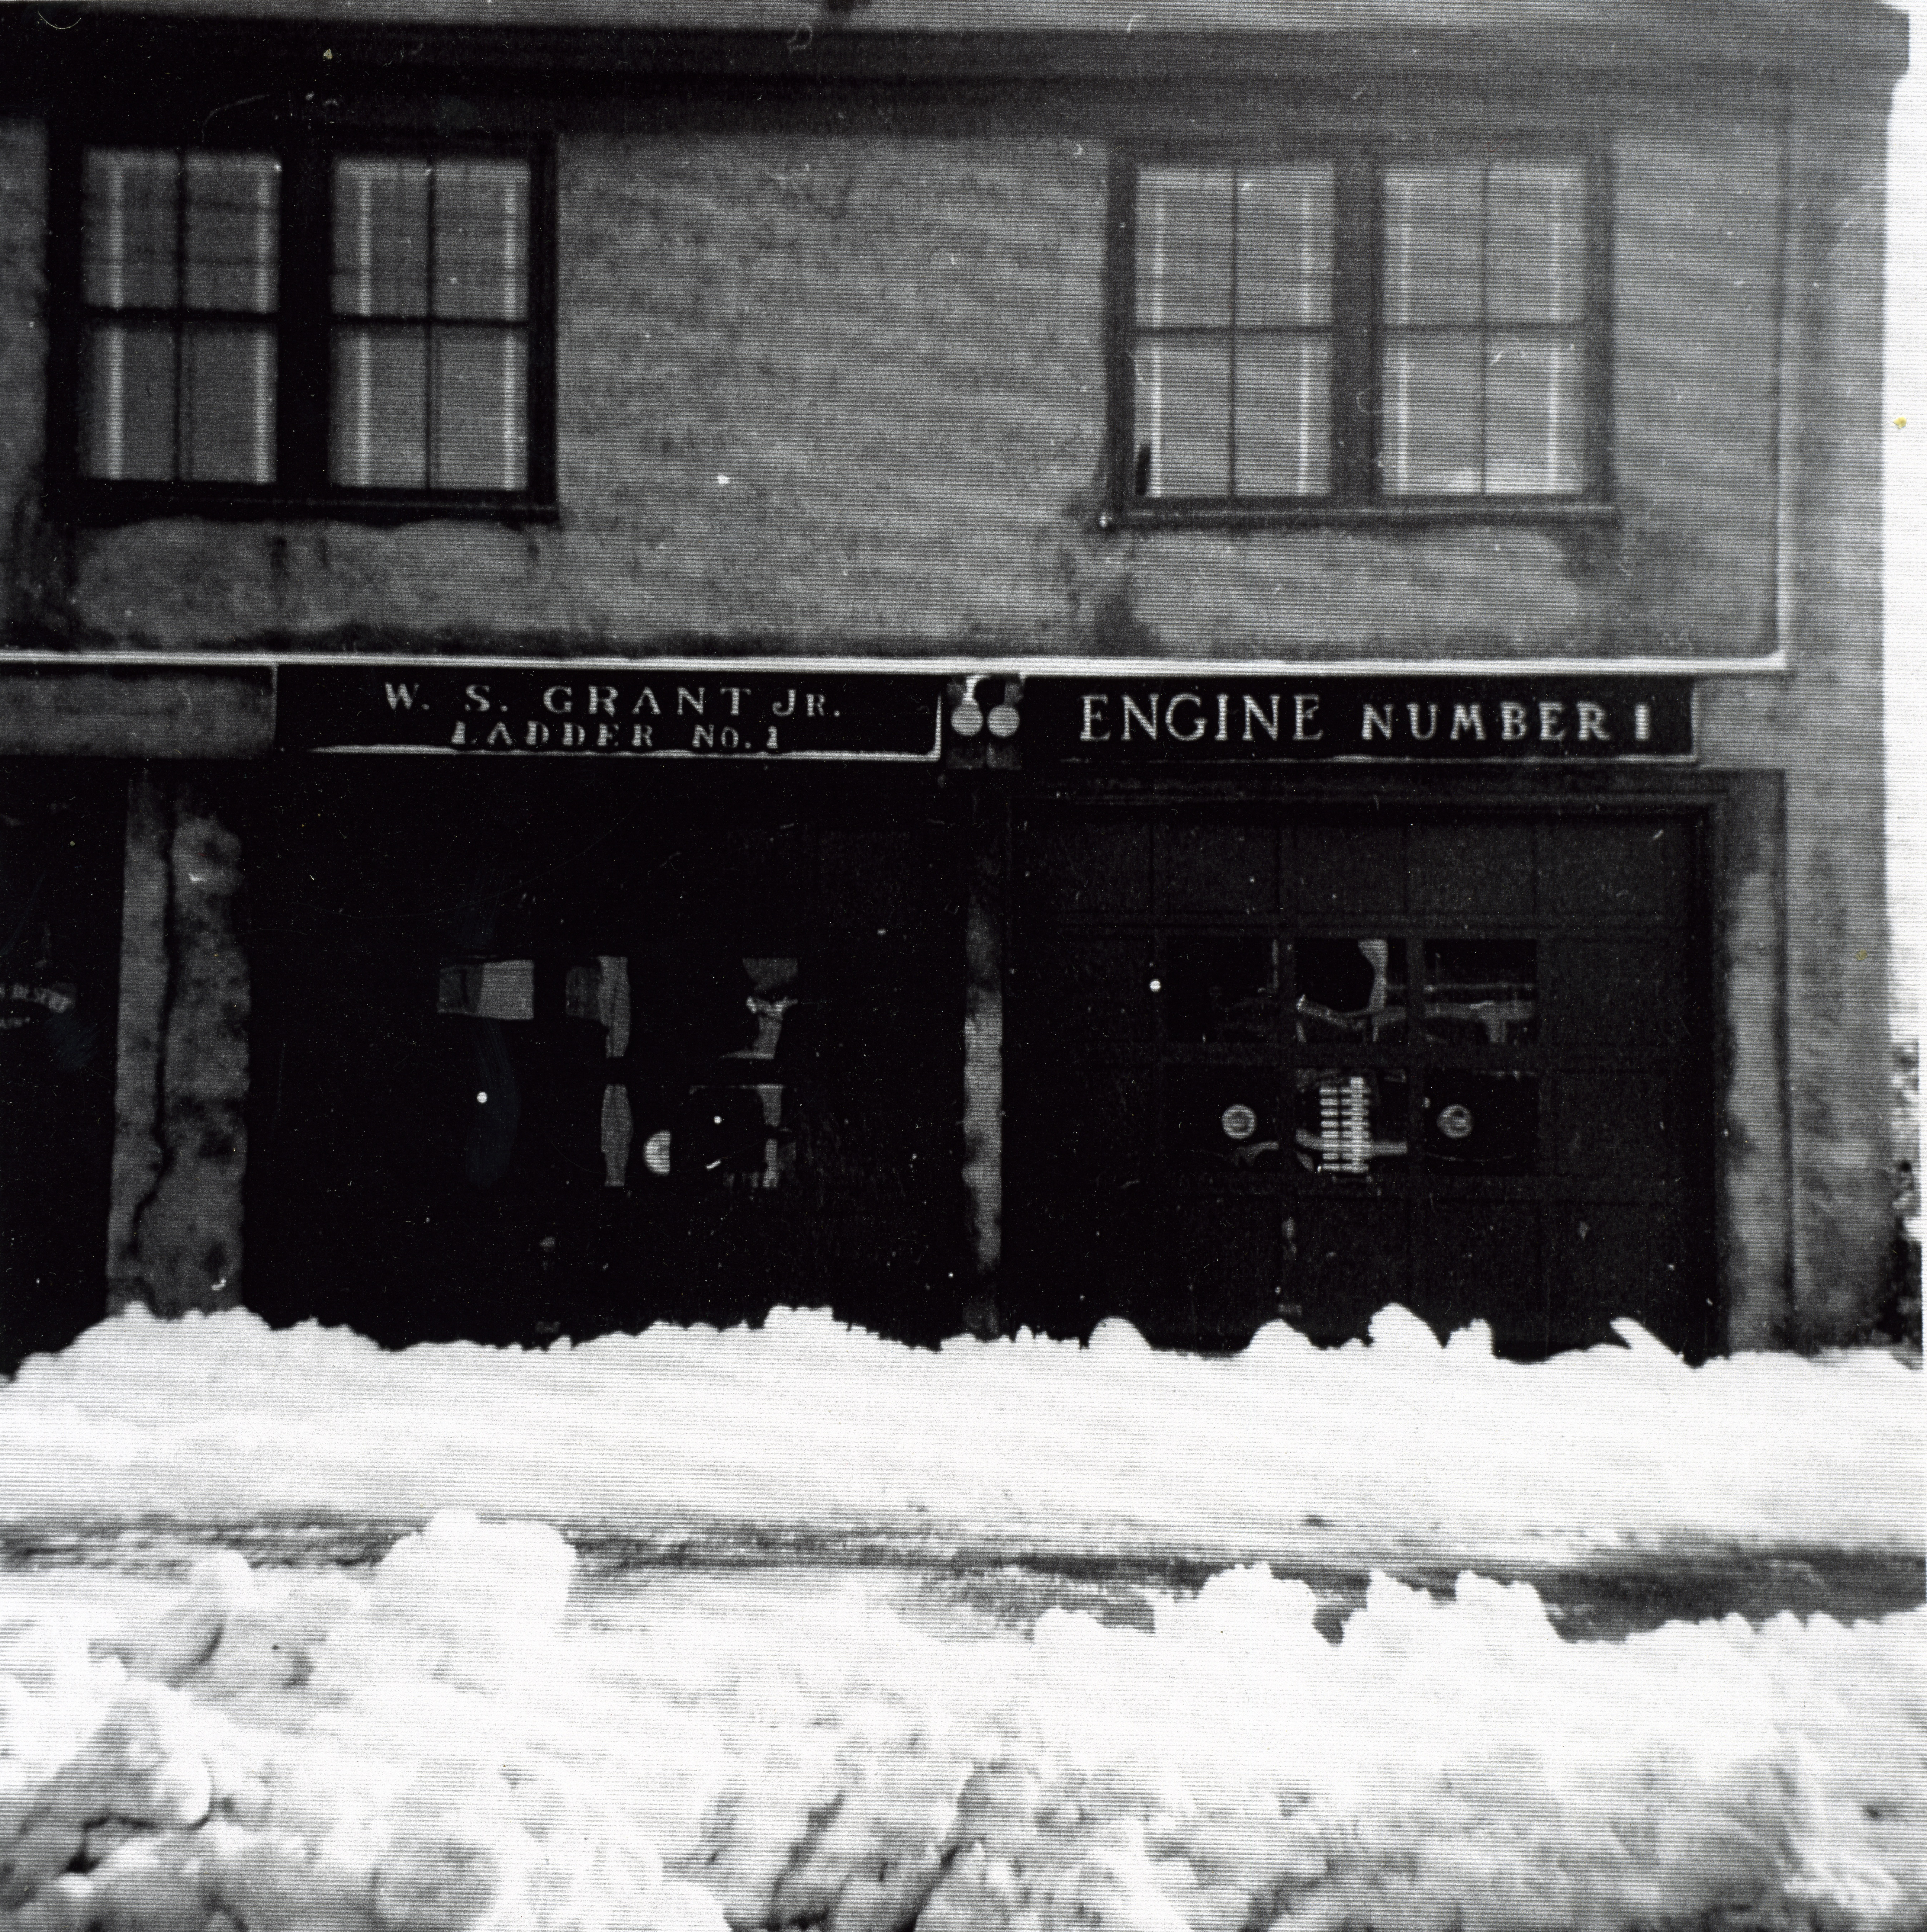 Northeast Harbor Fire House, Winter of 1954